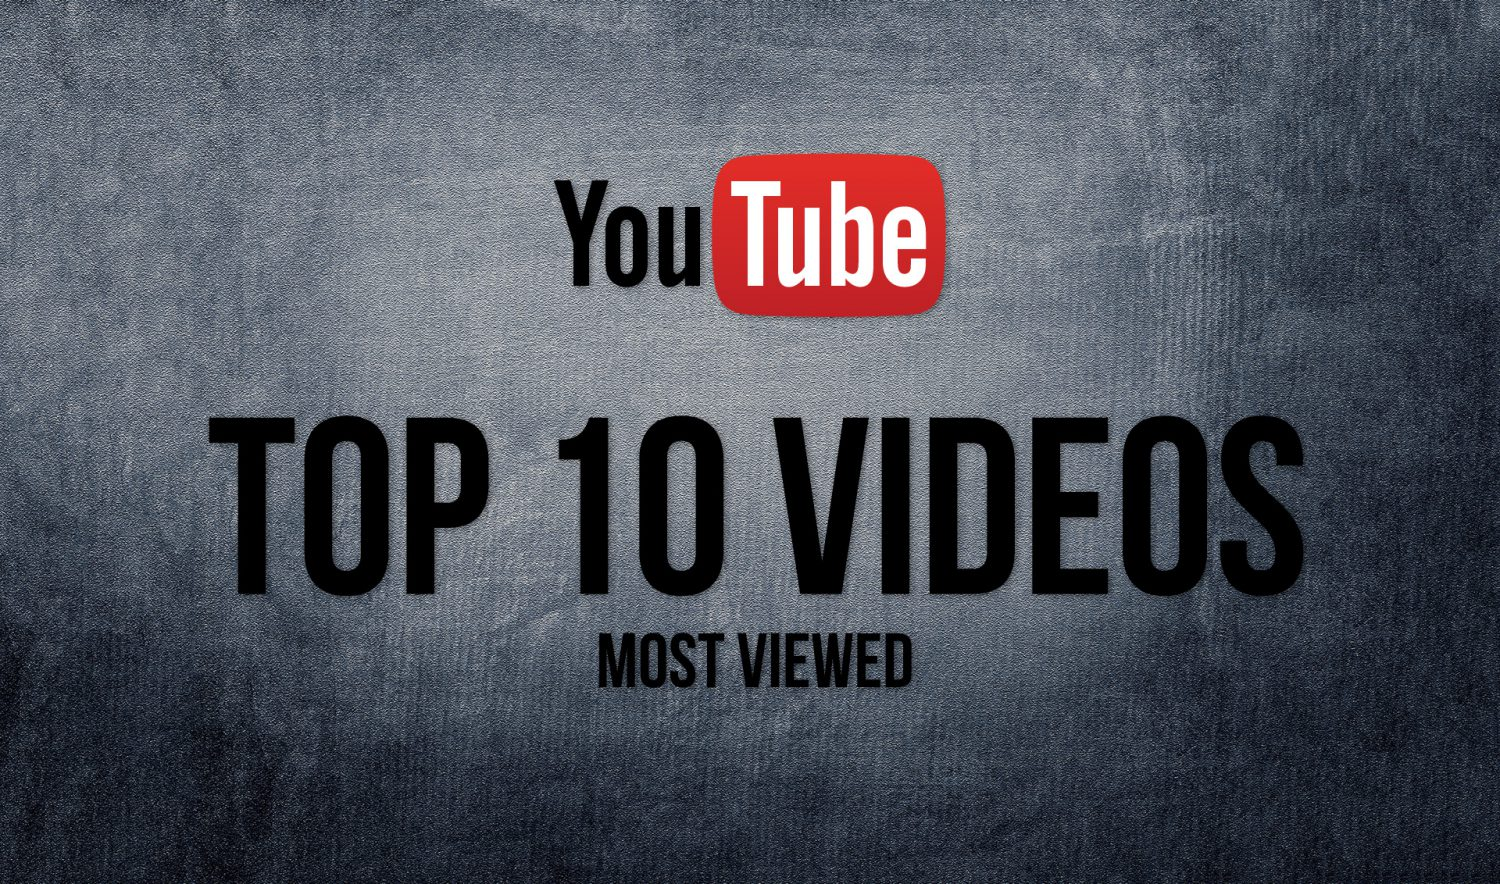 Top 10 Most Viewed Videos On Youtube 2017